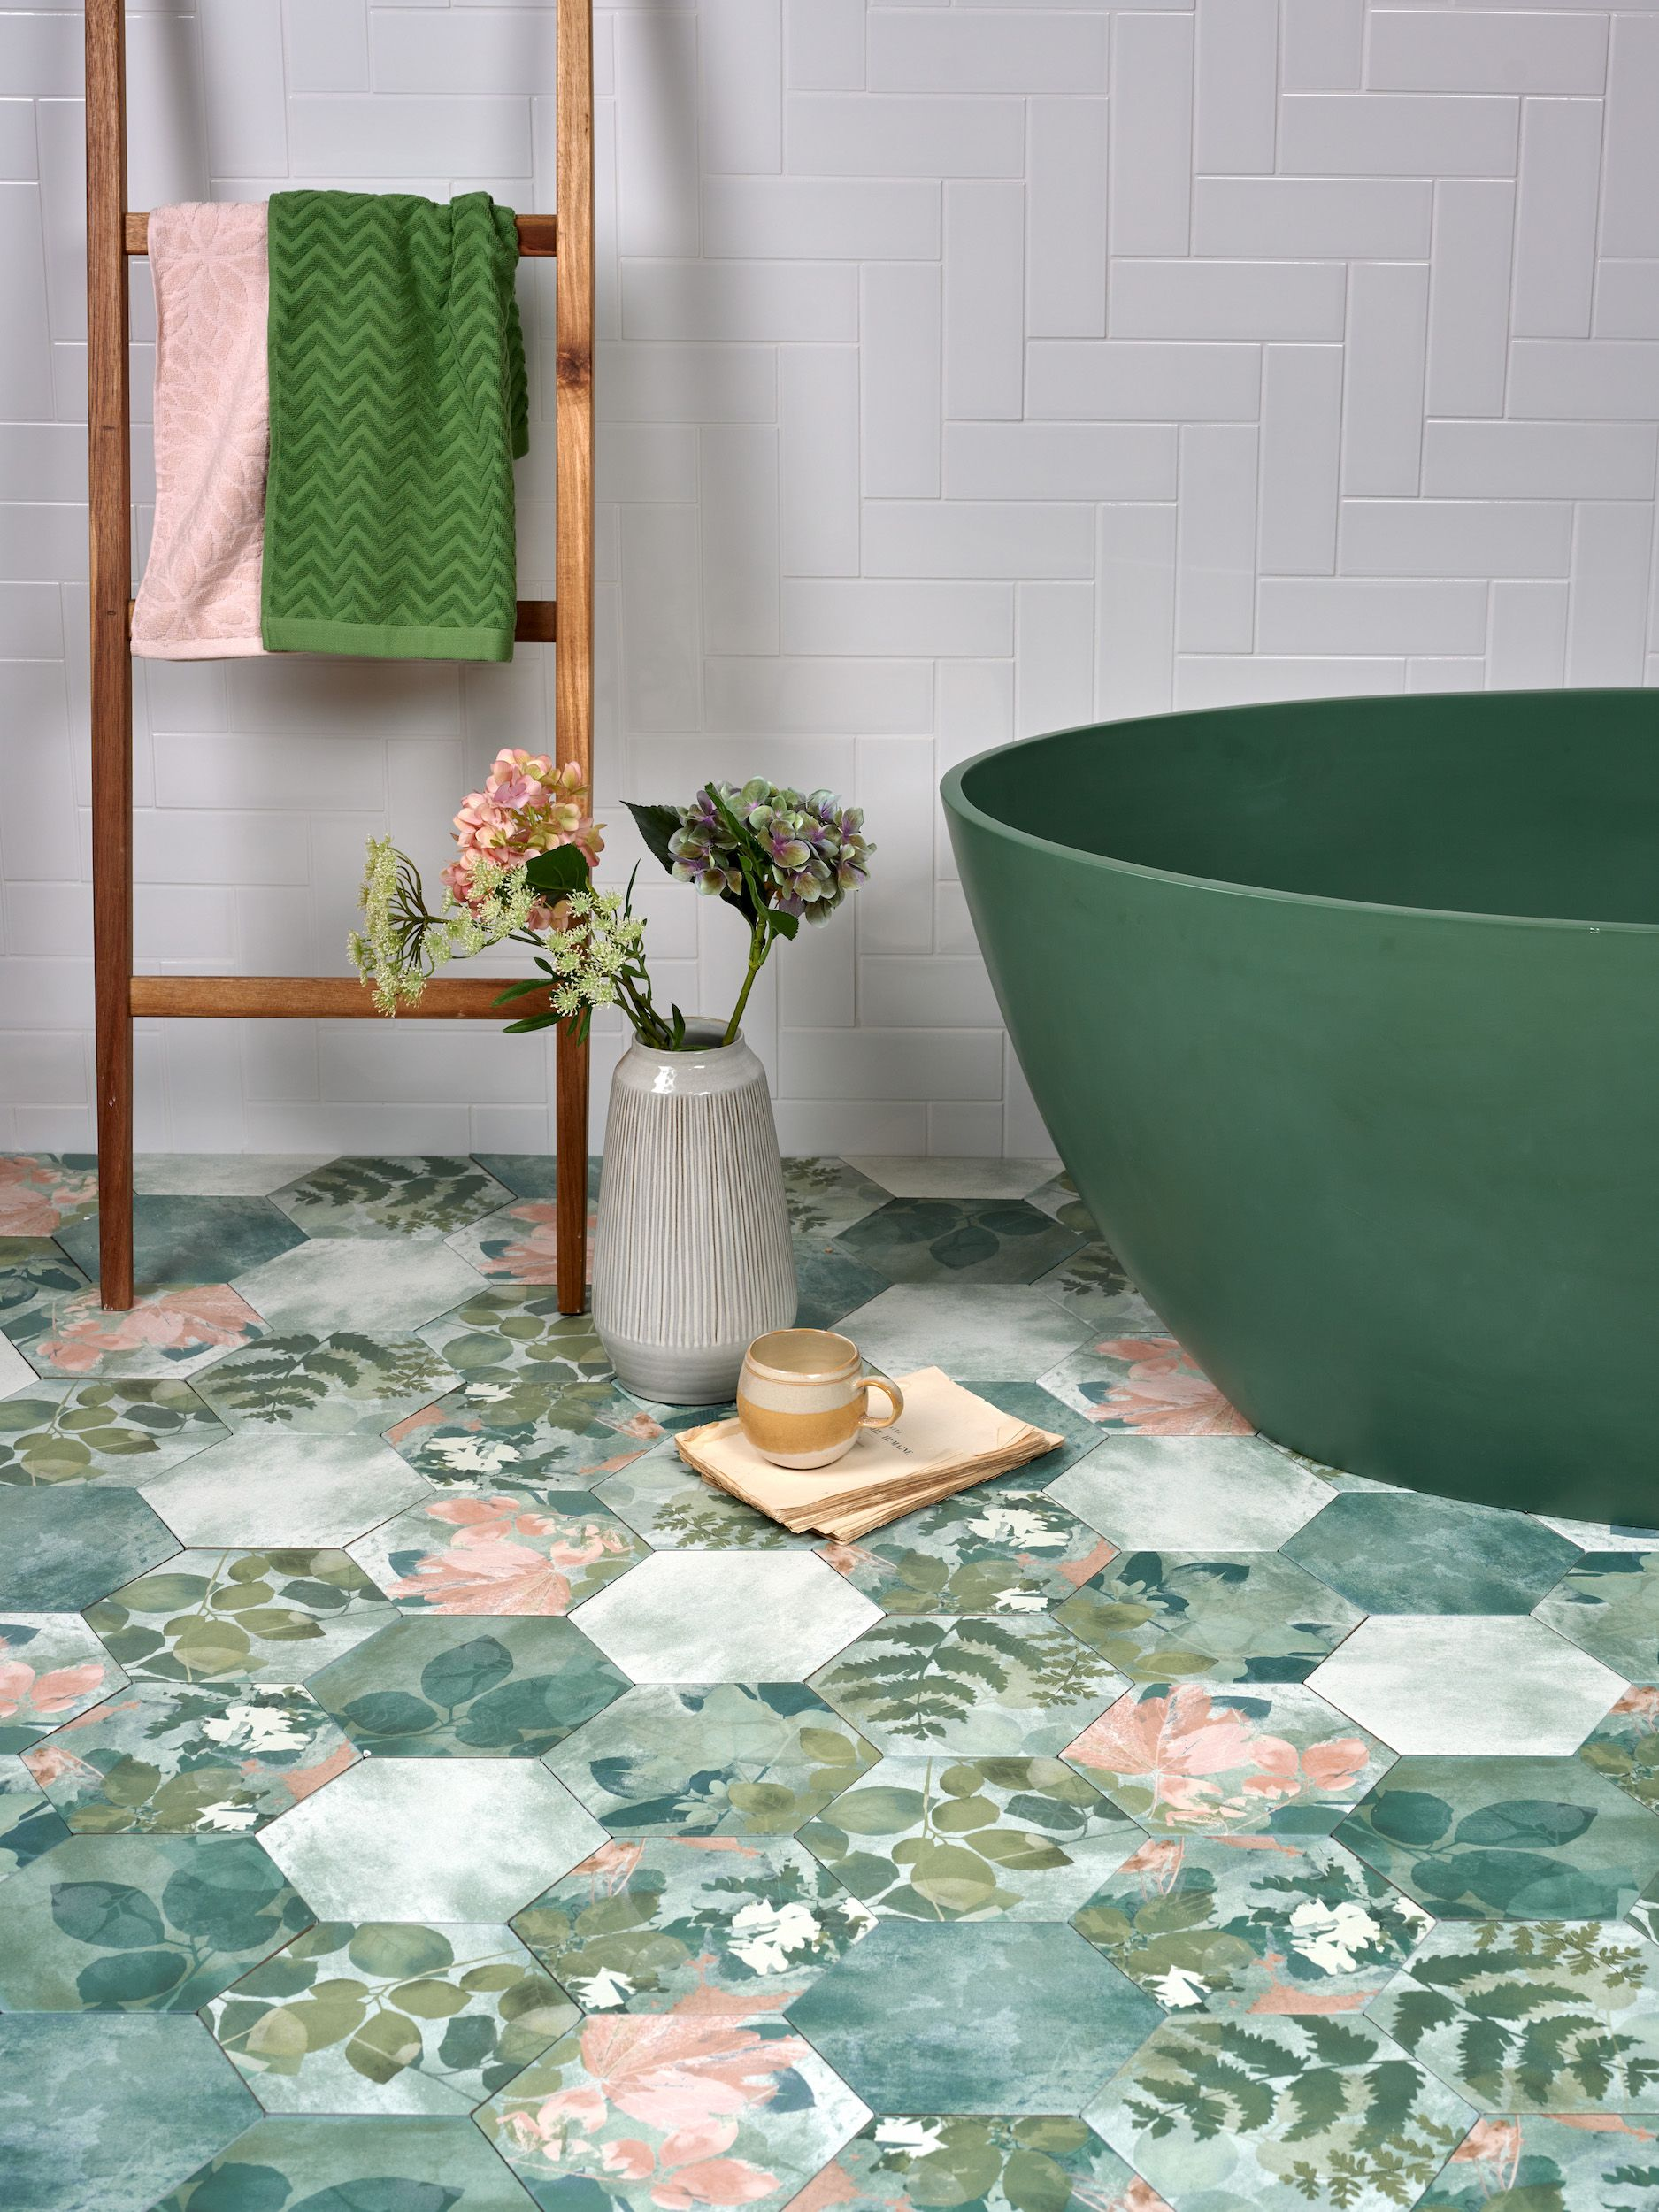 National Trust launches tile collection inspired by its properties and gardens